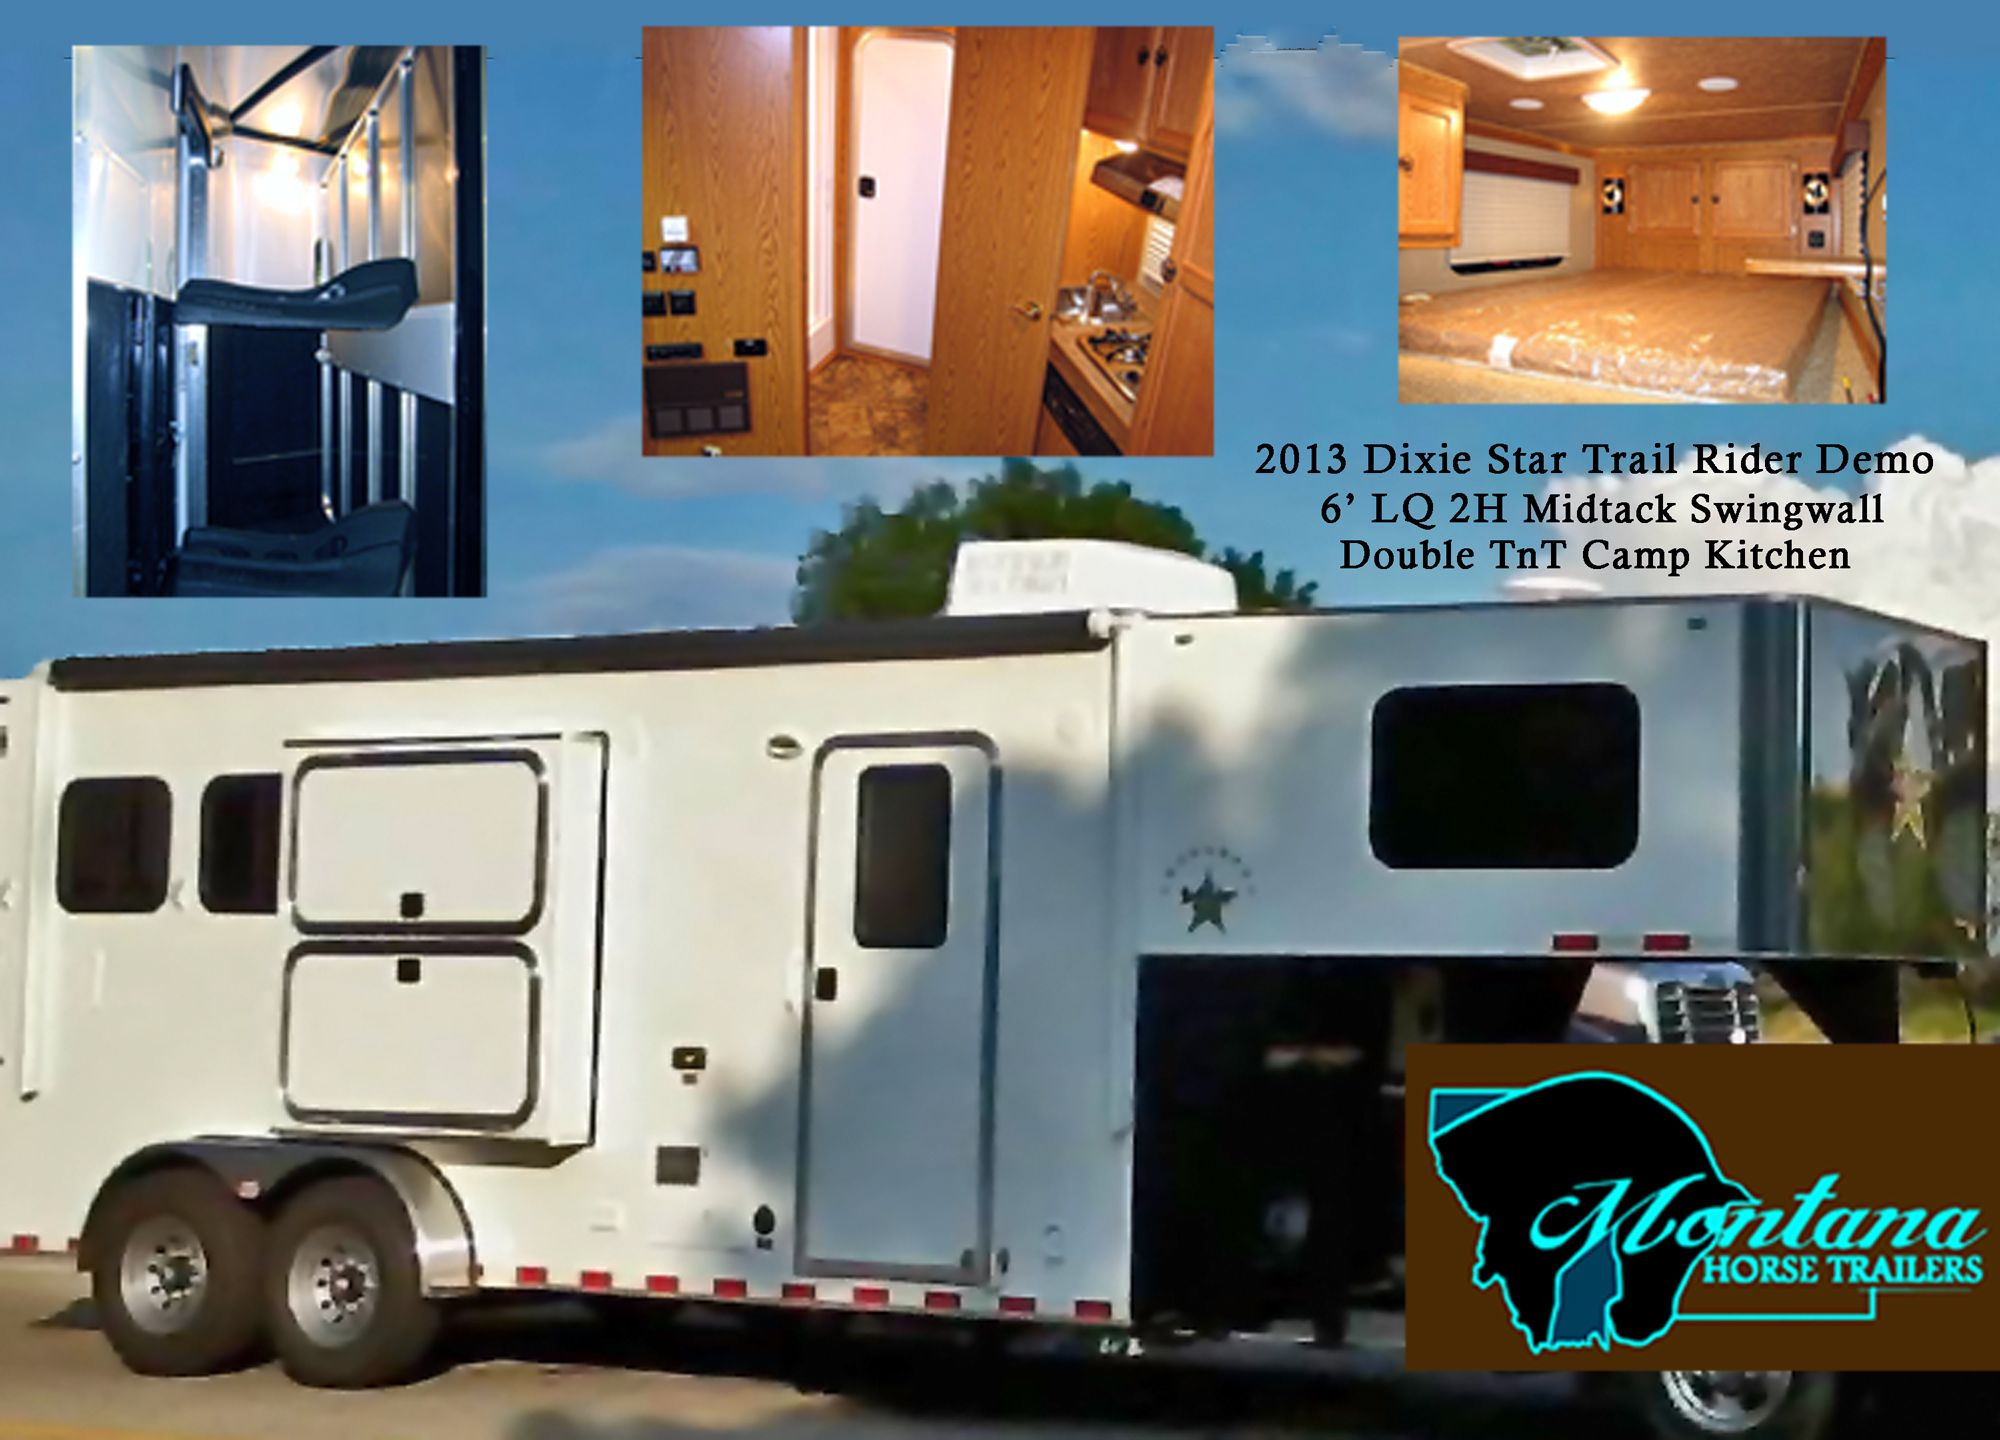 Custom 6 Living Quarters Gooseneck 2 Horse Trailer For Sale No Need To Break The Bank On An Equine M Horse Trailers Horse Trailers For Sale Trailers For Sale